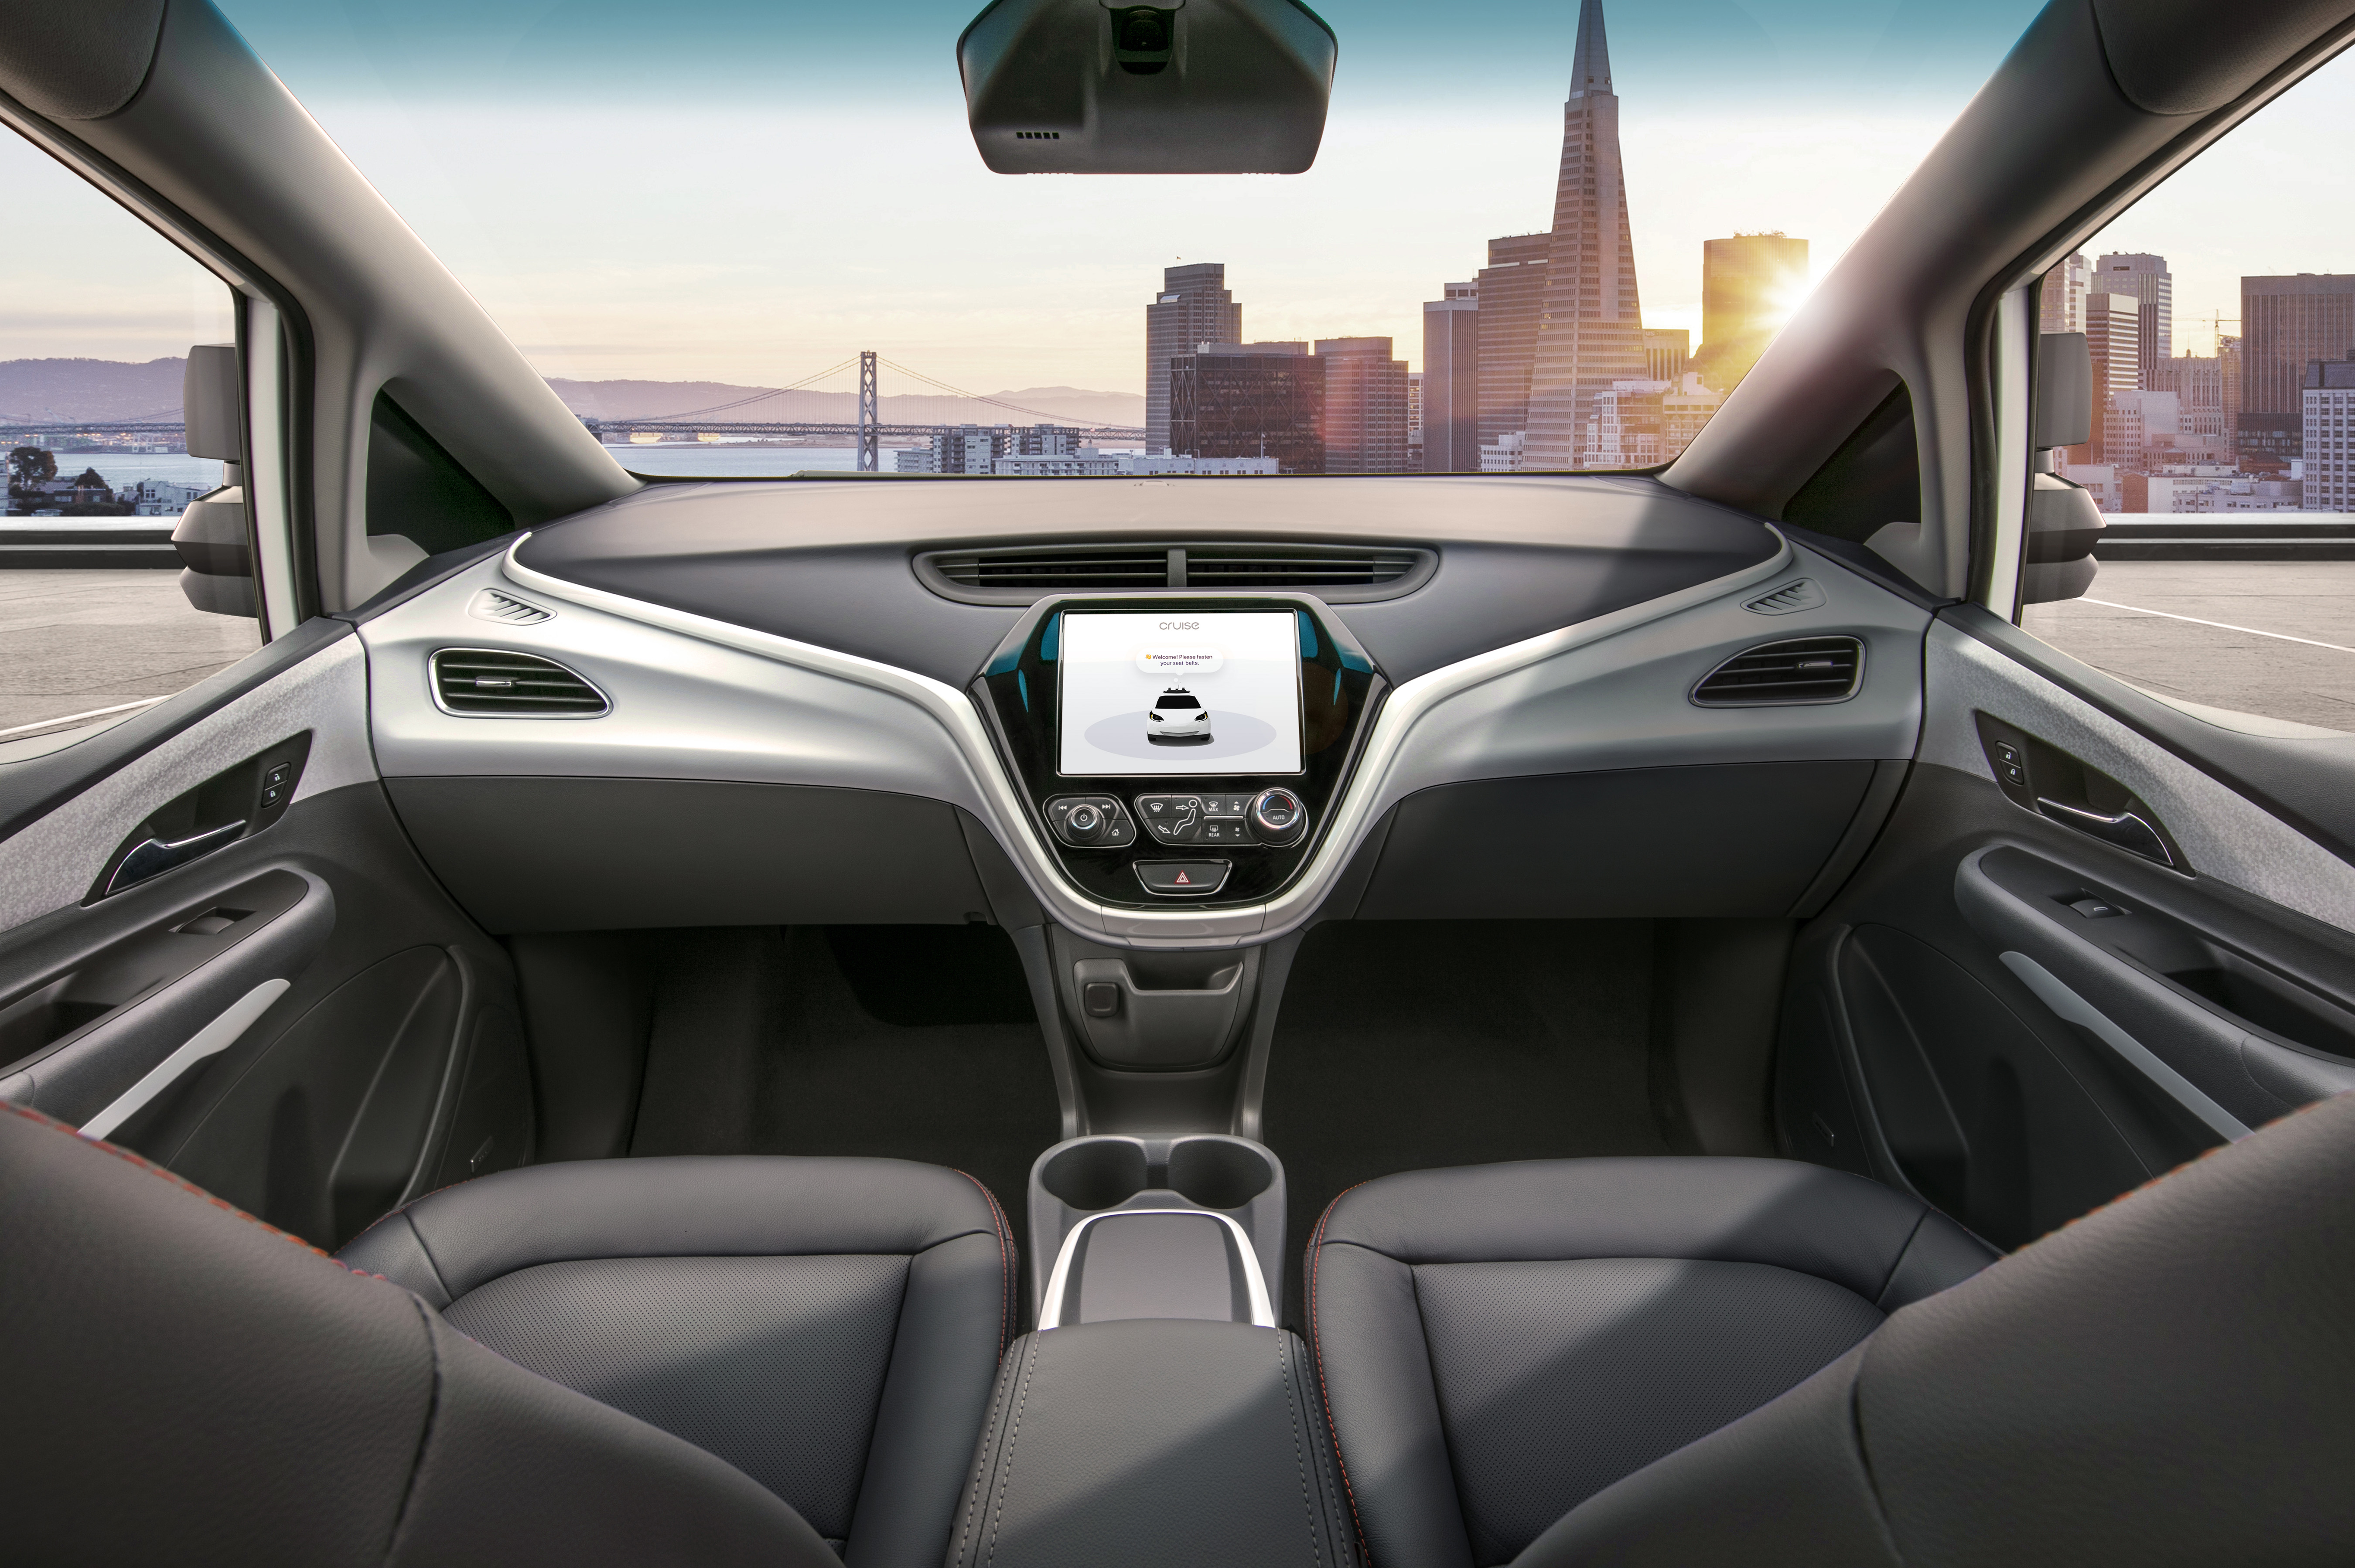 GM's upcoming Cruise AV has the attention of automotive industry observers.